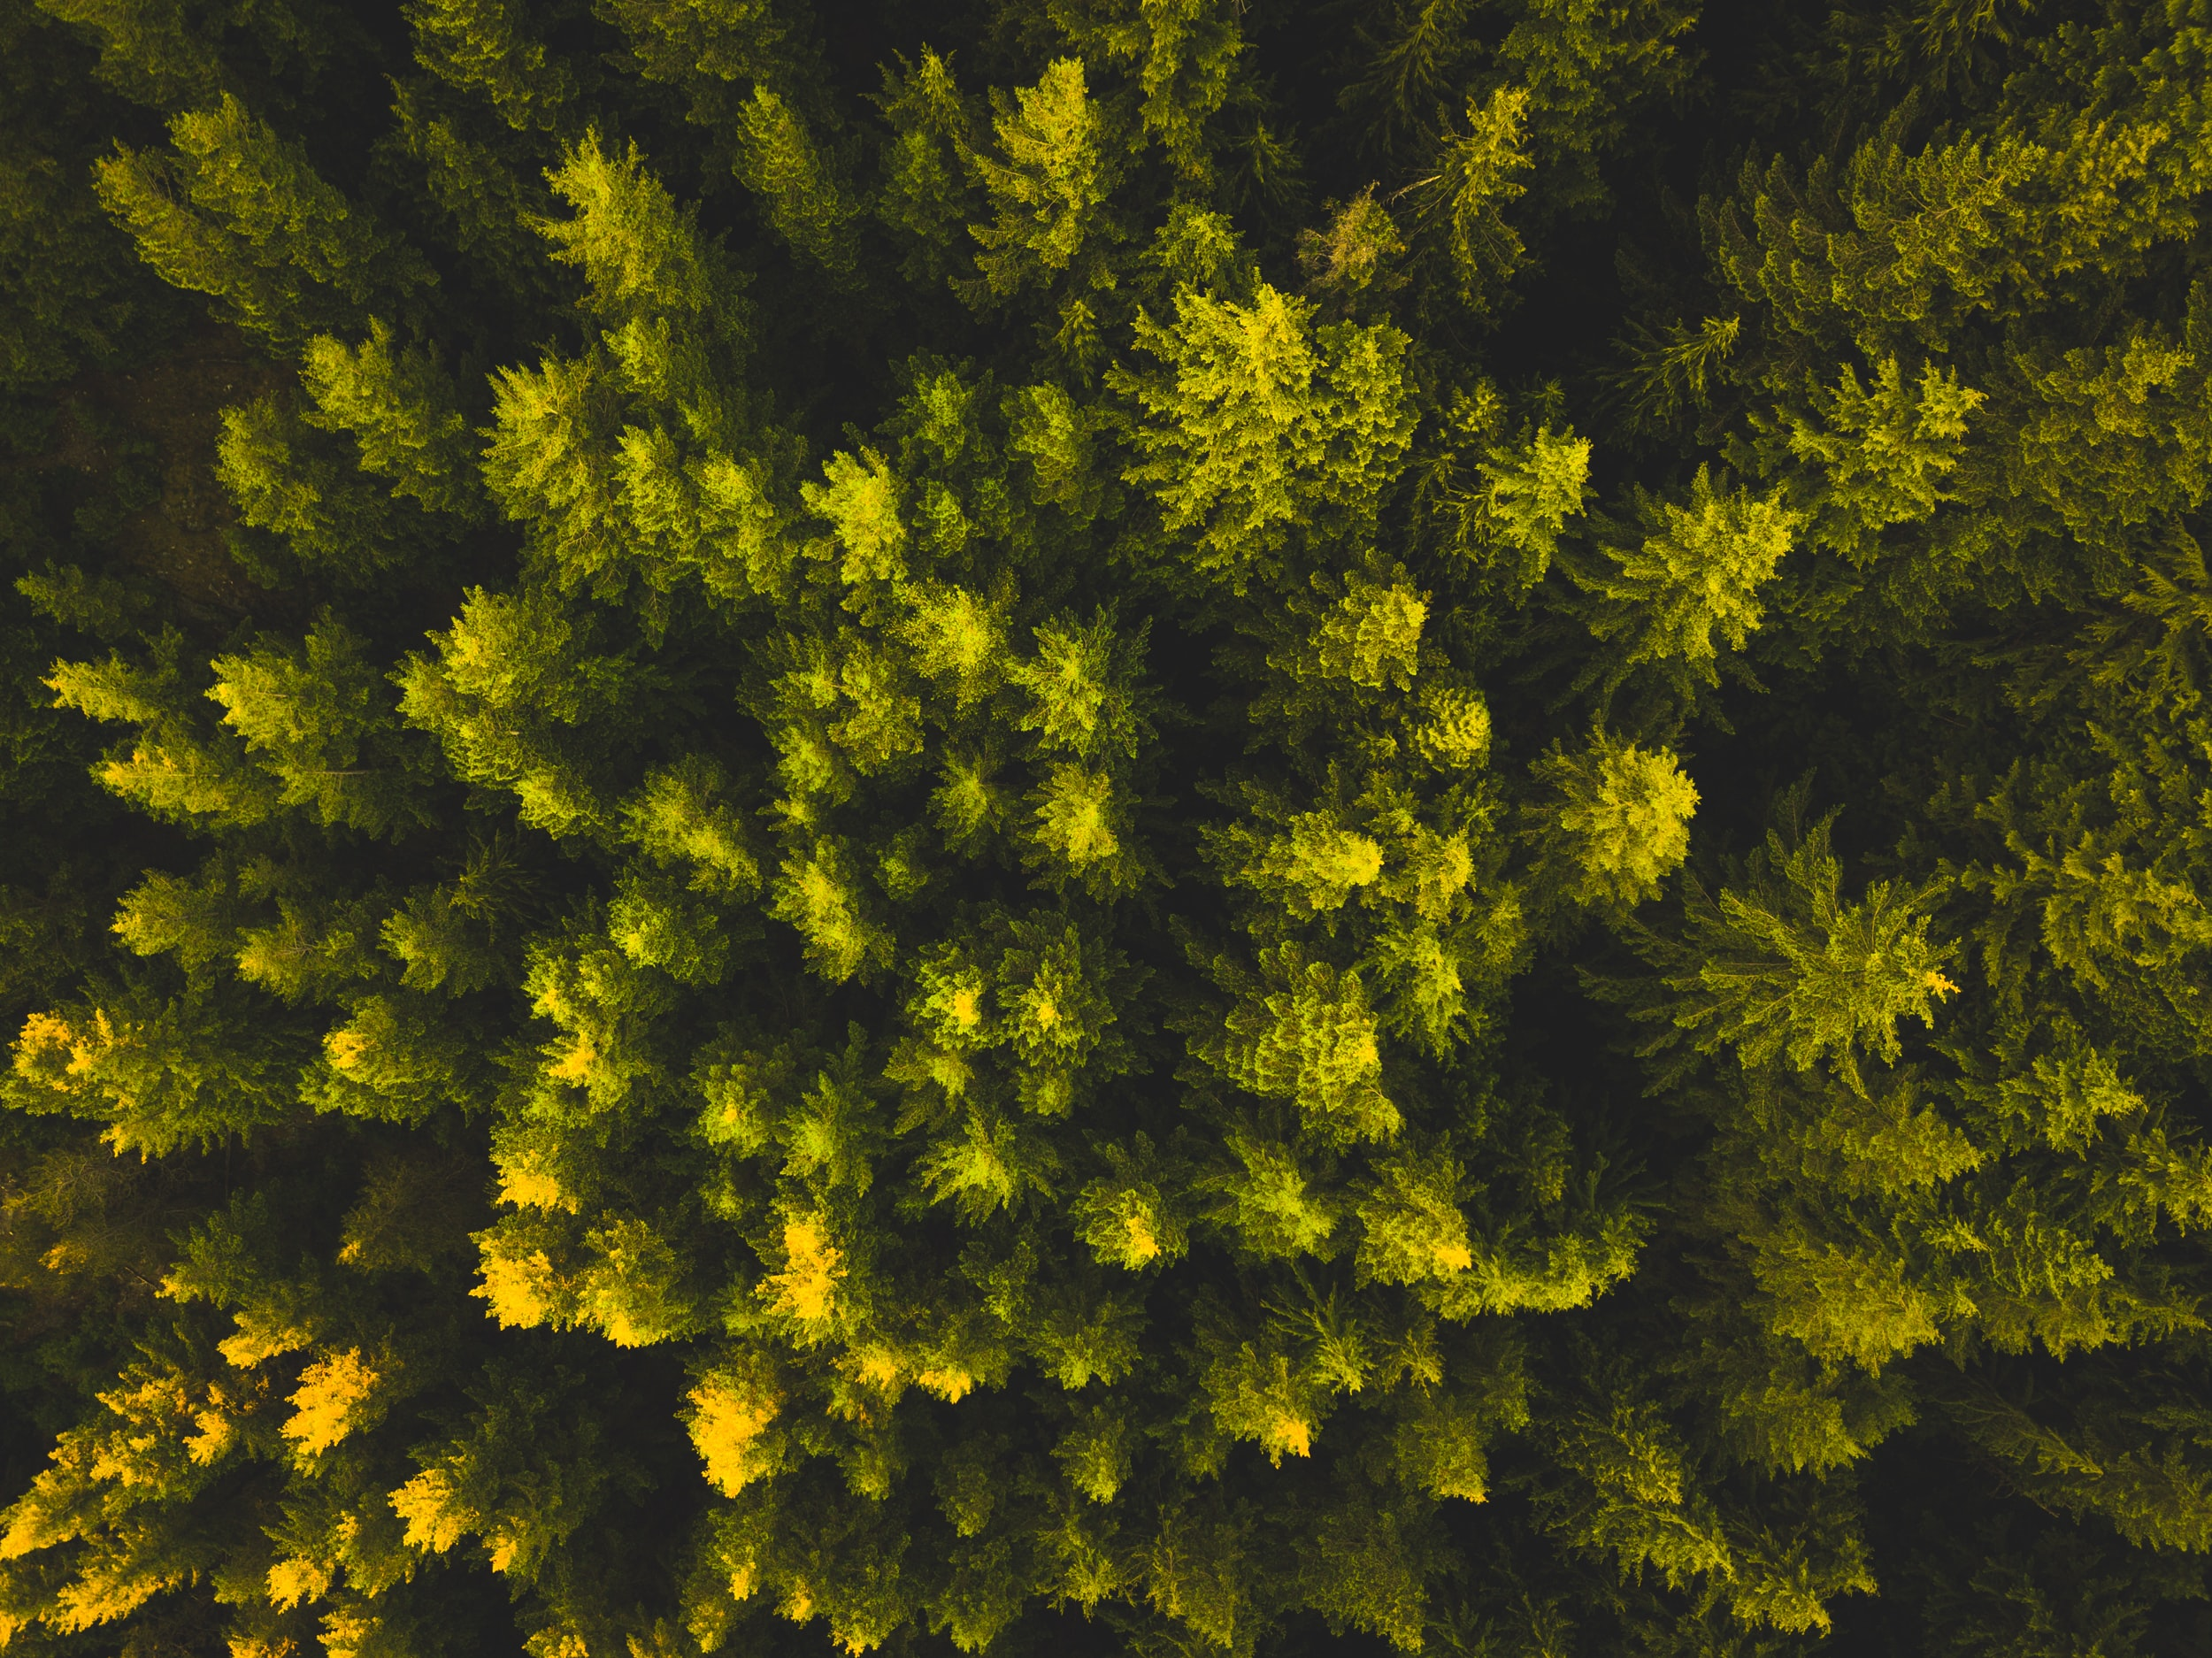 aerial view photography of green leaf trees